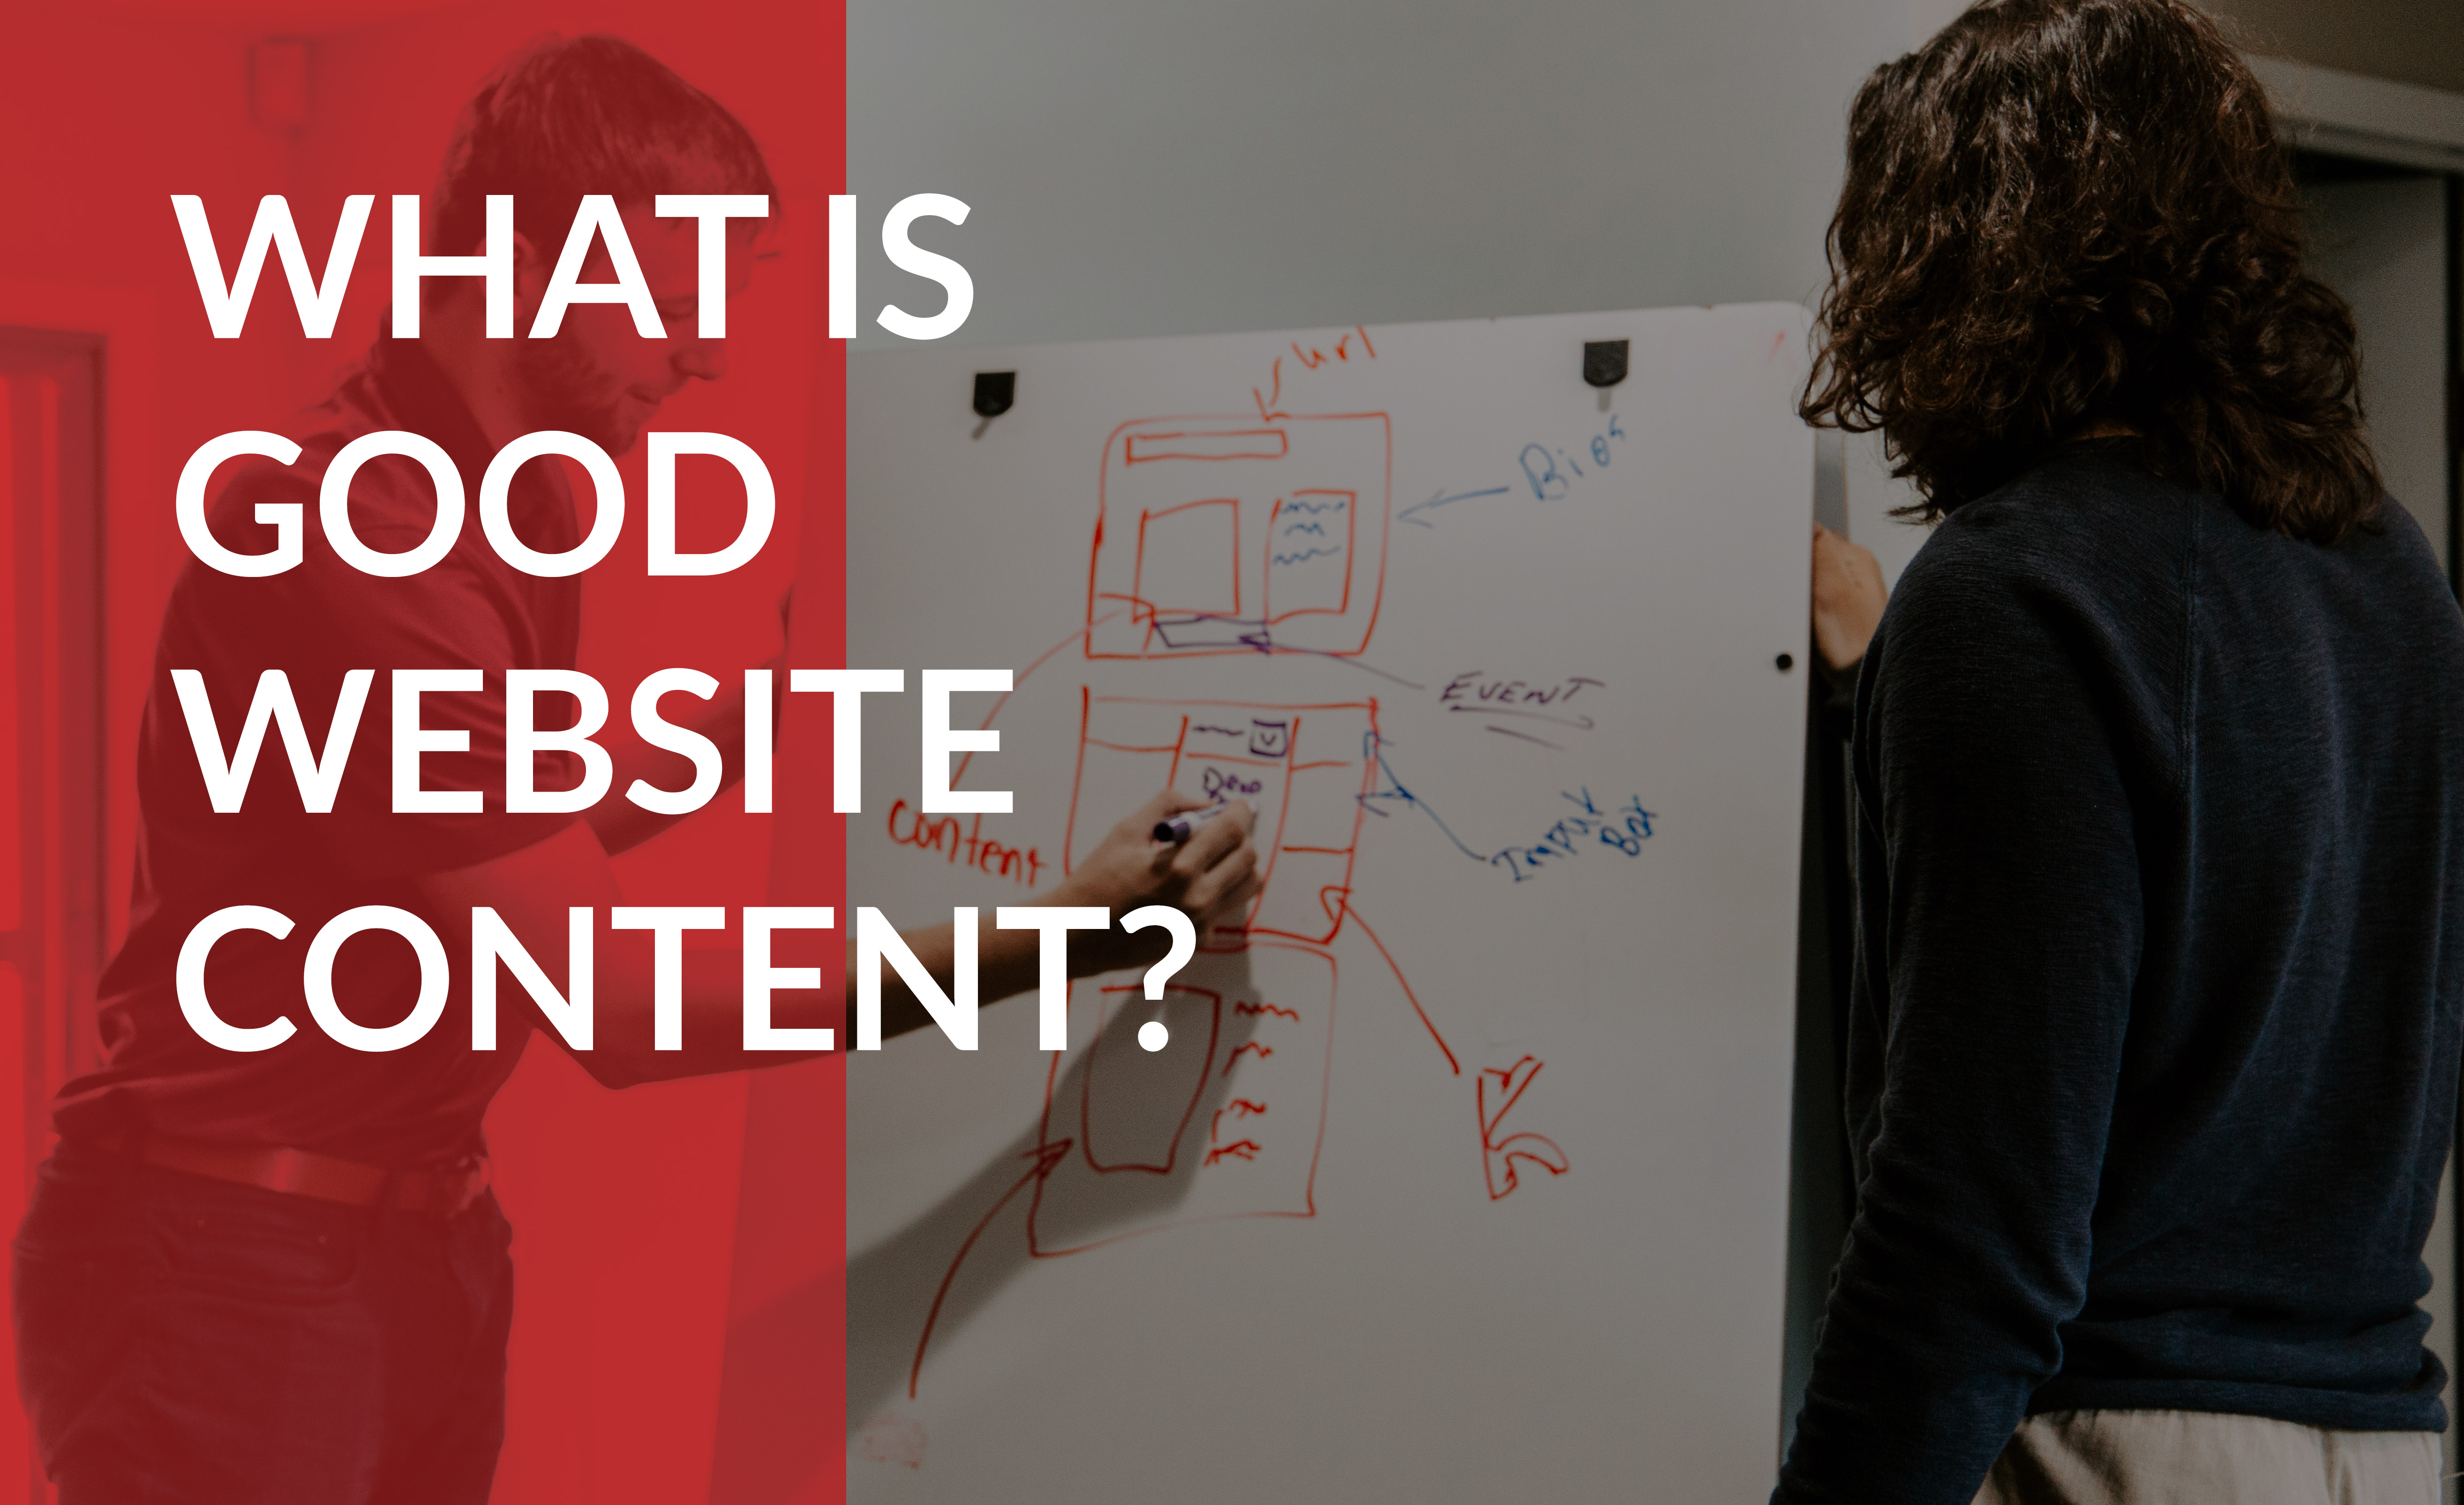 Exploring what makes for good website content.